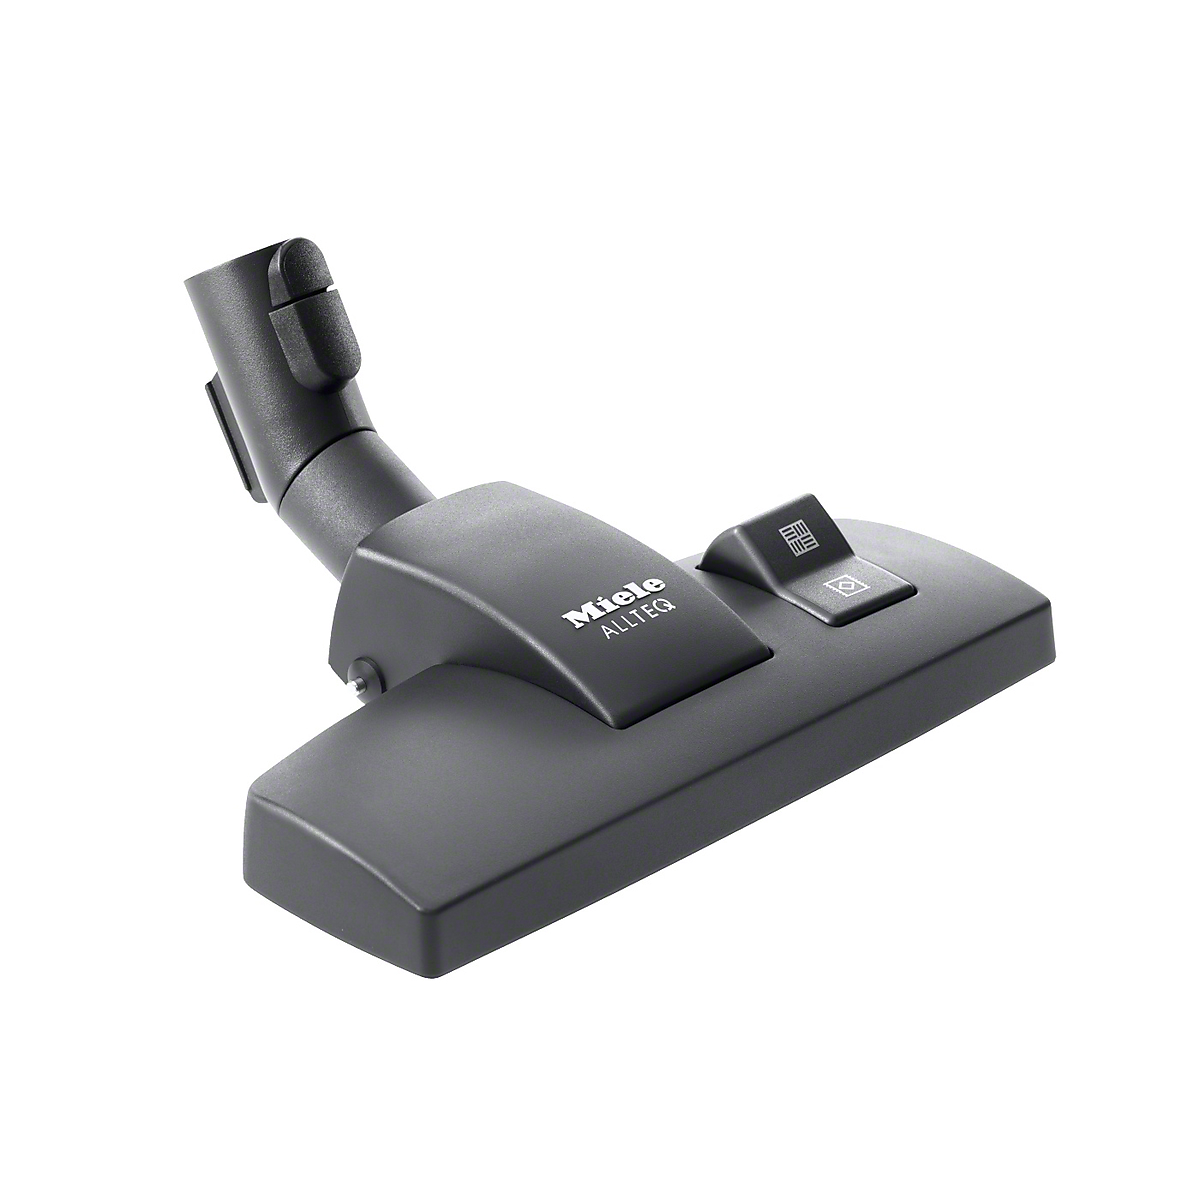 Miele AllTeQ - floorheadfor vacuuming hard floors and carpets thanks to the retractable bristle strip.